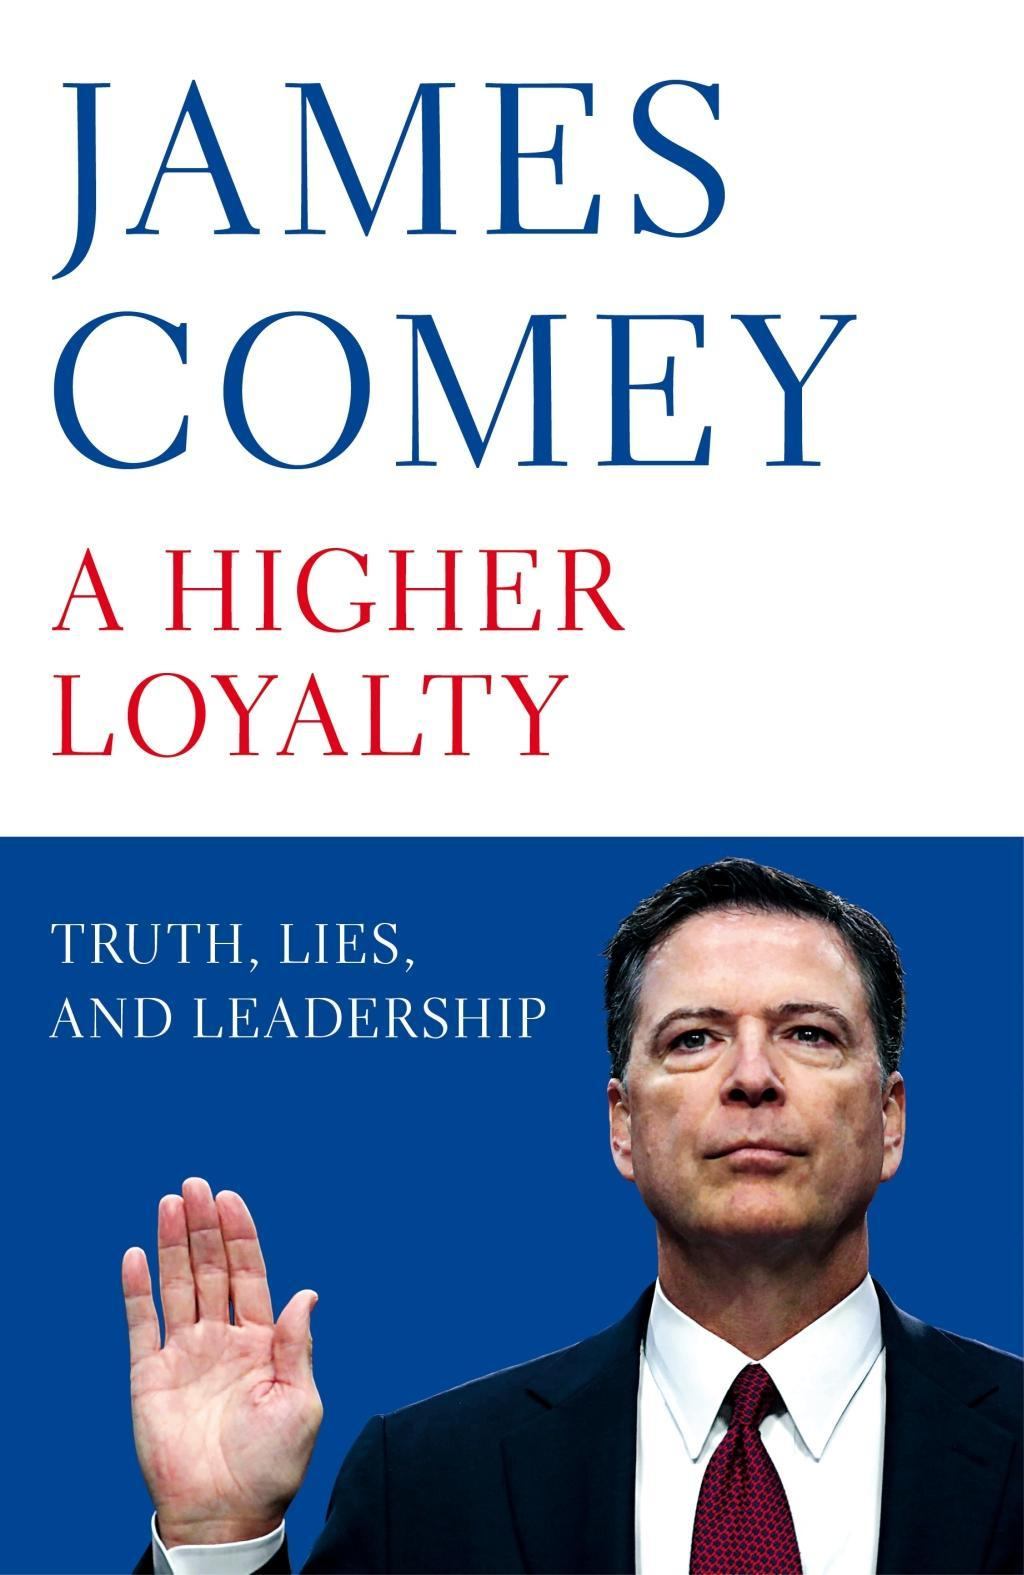 A Higher Loyalty: Truth, Lies, and Leadership by James Comey, ISBN: 9781529000825